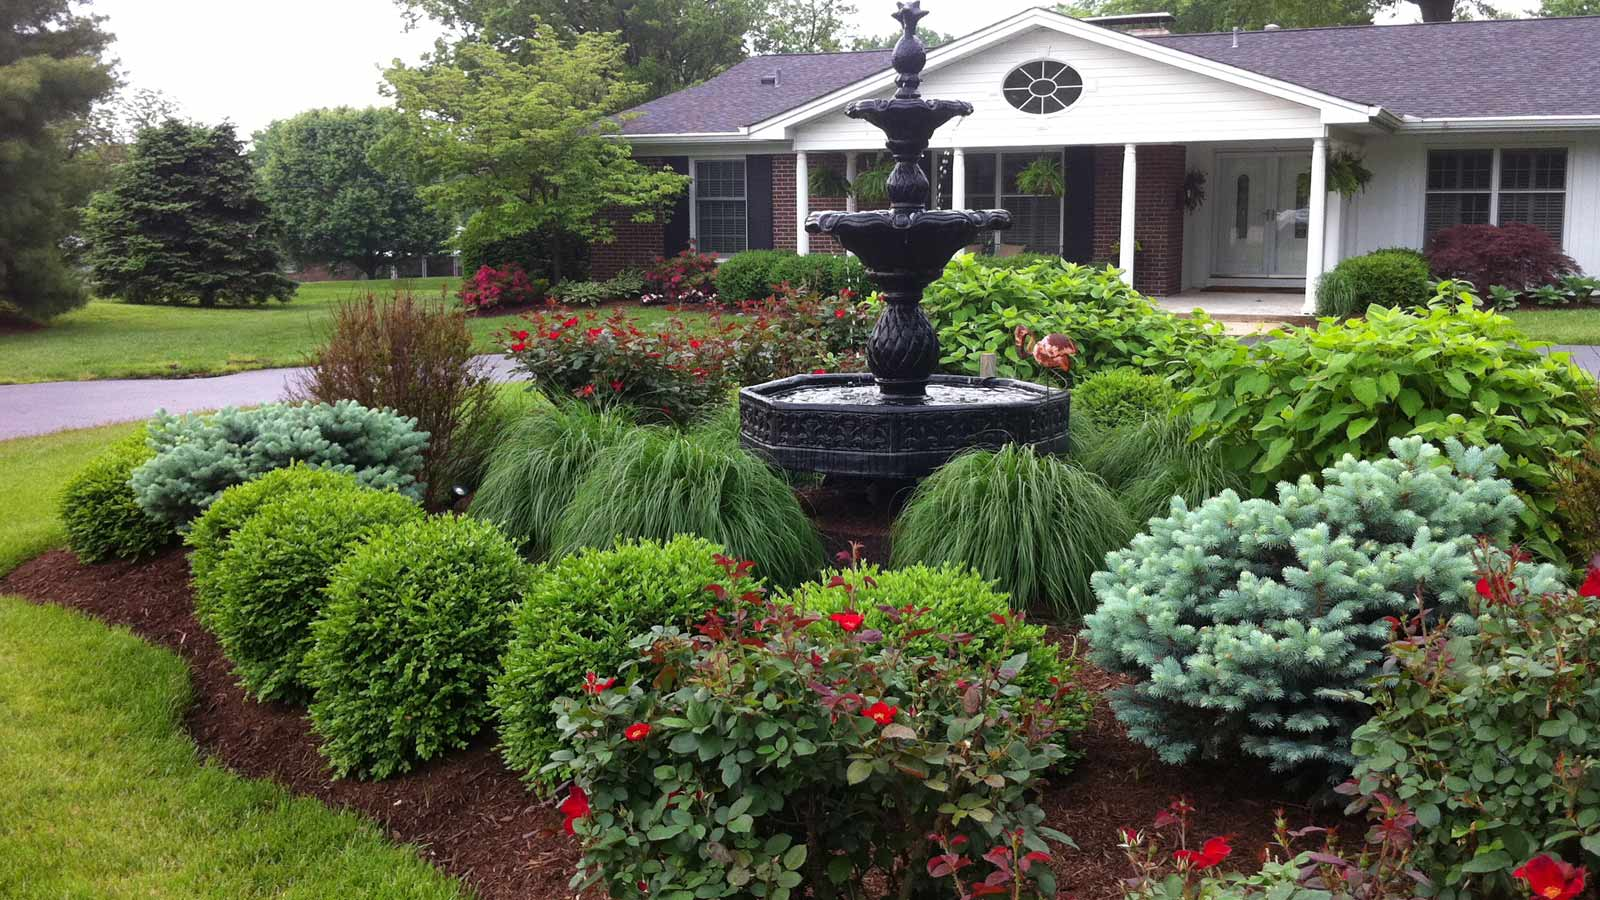 Residential Landscaping-Dallas TX Landscape Designs & Outdoor Living Areas-We offer Landscape Design, Outdoor Patios & Pergolas, Outdoor Living Spaces, Stonescapes, Residential & Commercial Landscaping, Irrigation Installation & Repairs, Drainage Systems, Landscape Lighting, Outdoor Living Spaces, Tree Service, Lawn Service, and more.